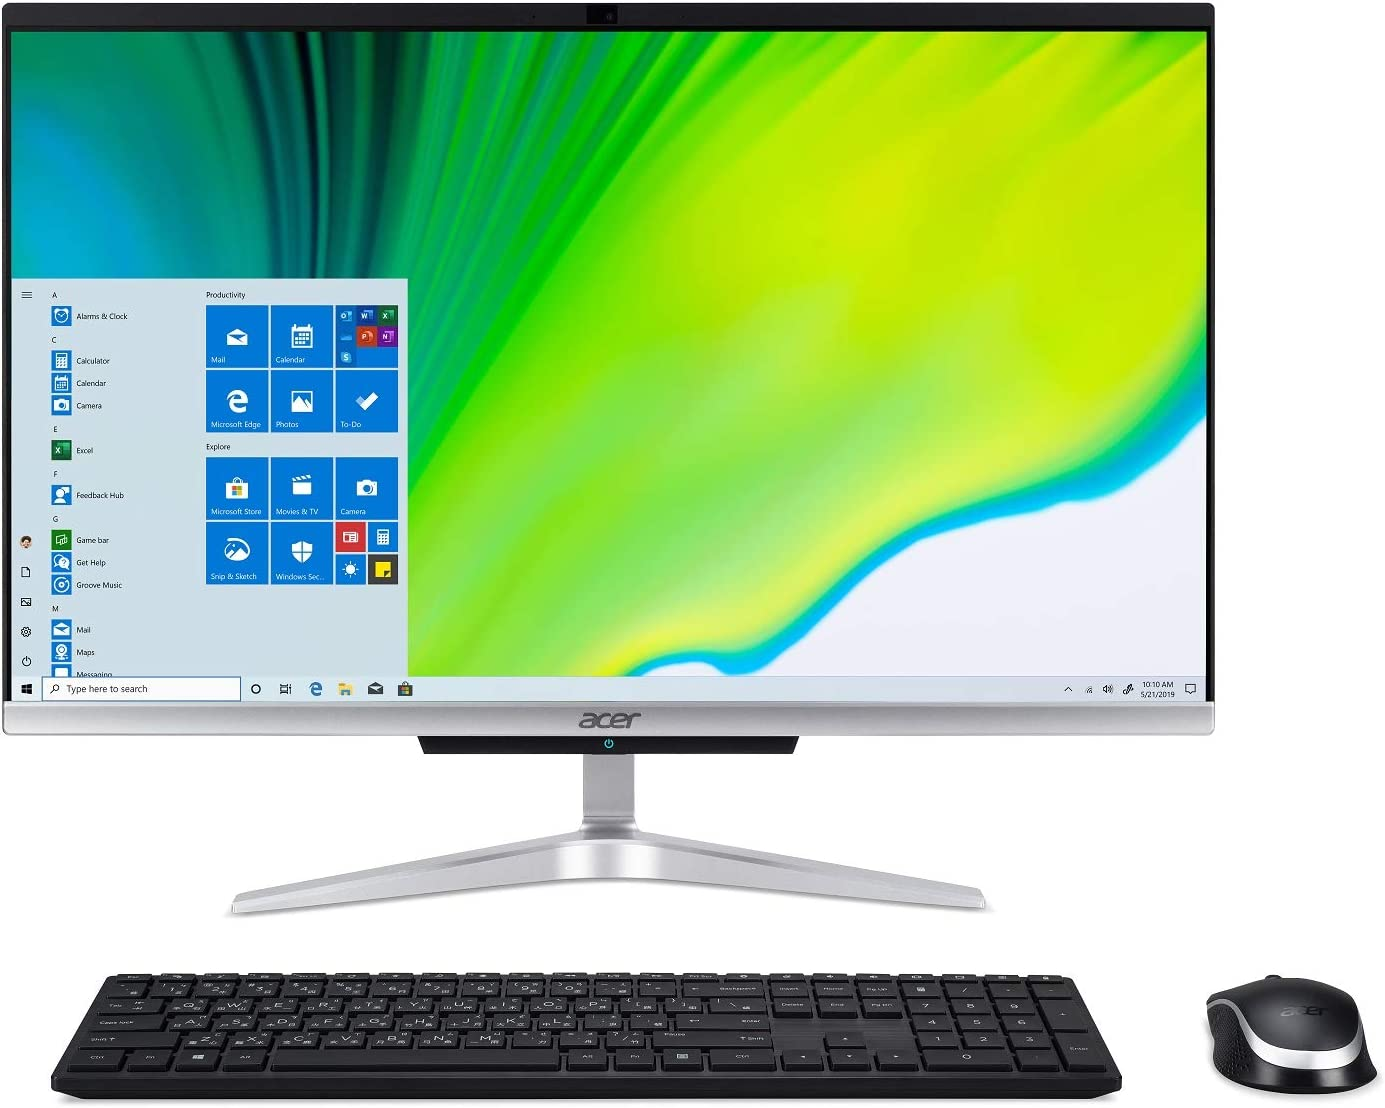 "Acer Aspire C24-963-UR14 AIO Desktop, 23.8"" Full HD Display, 10th Gen Intel Core i5-1035G1, 12GB DDR4, 512GB NVMe M.2 SSD, 802.11ac WiFi 5, Wireless Keyboard and Mouse, Windows 10 Home"